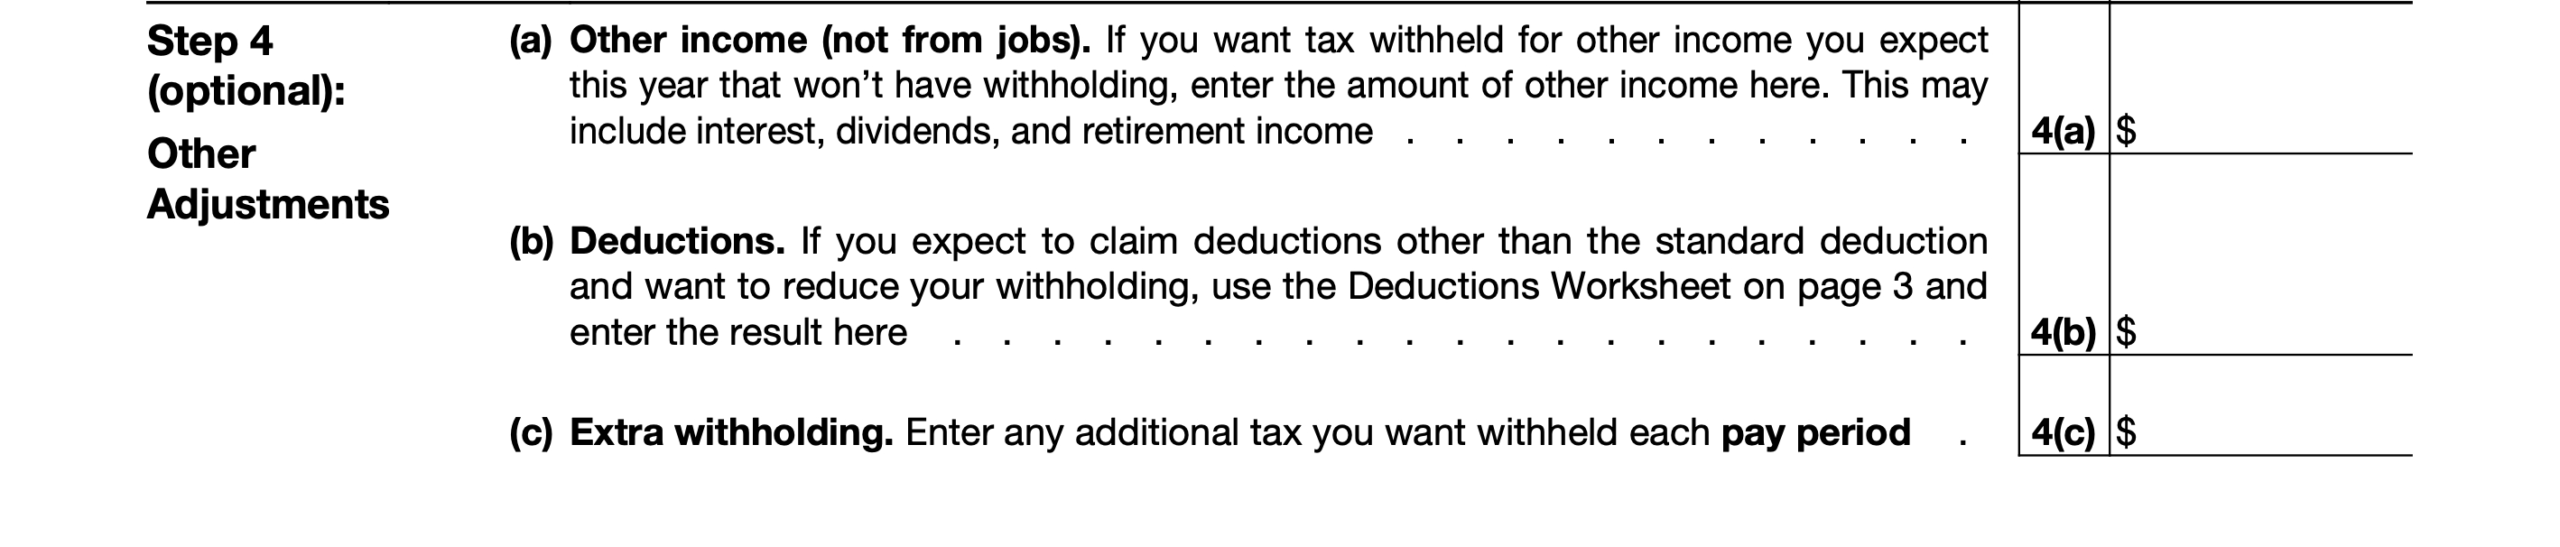 2021 Irs Form W-4: Simple Instructions + Pdf Download intended for 2021 W-4 Form Printable